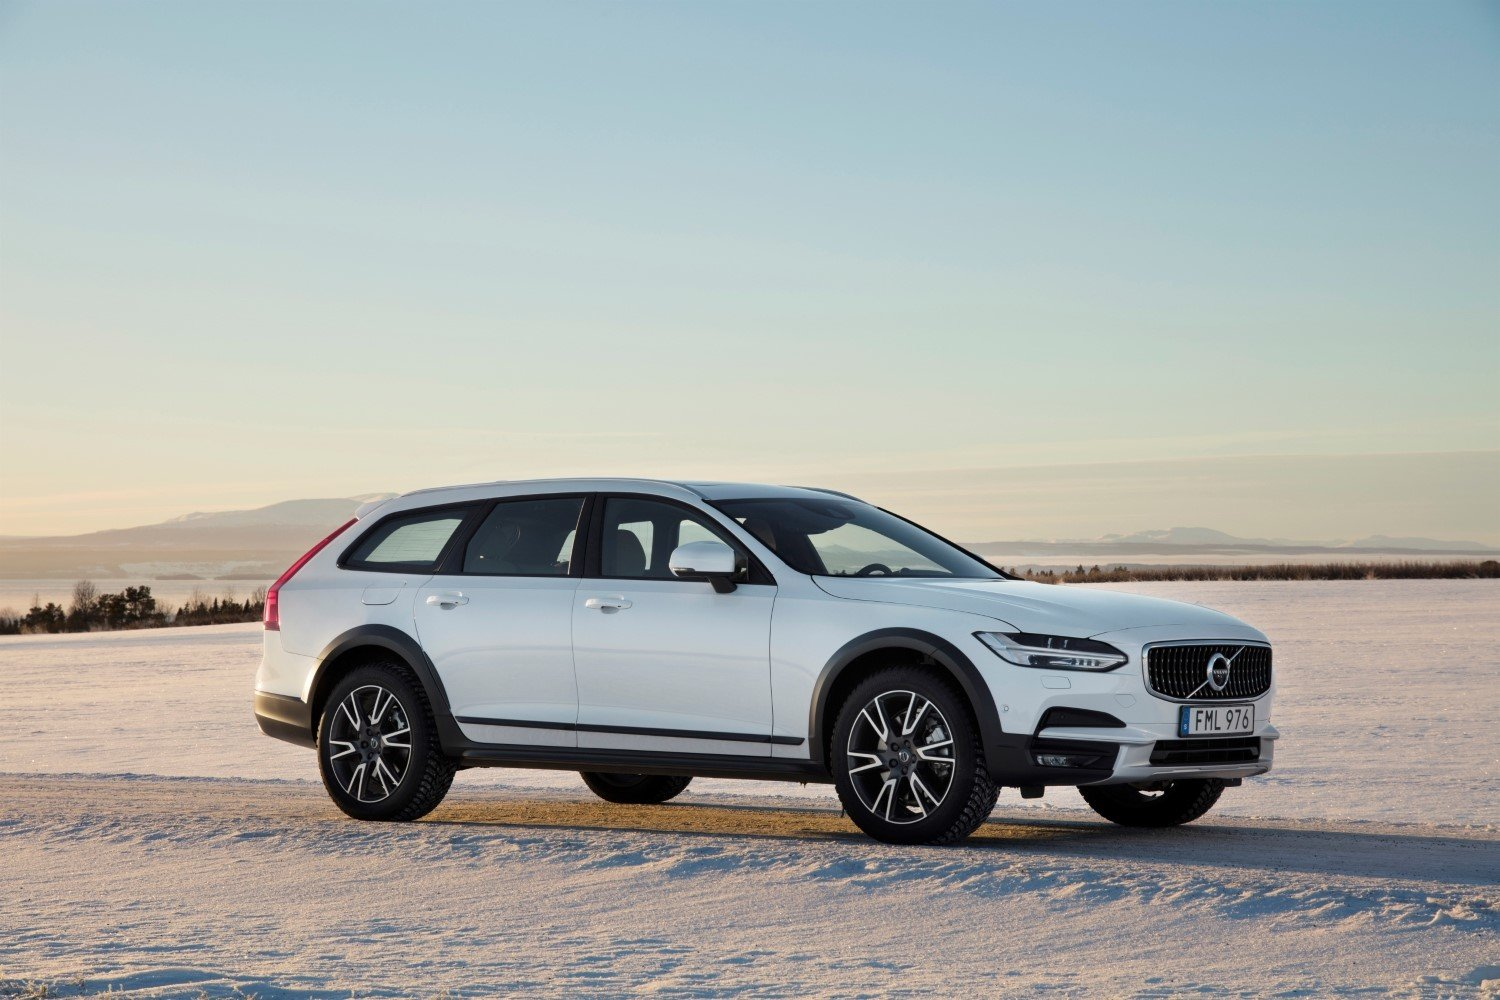 2019 Volvo V90 Cross Country Wagon Specs, Review, and ...